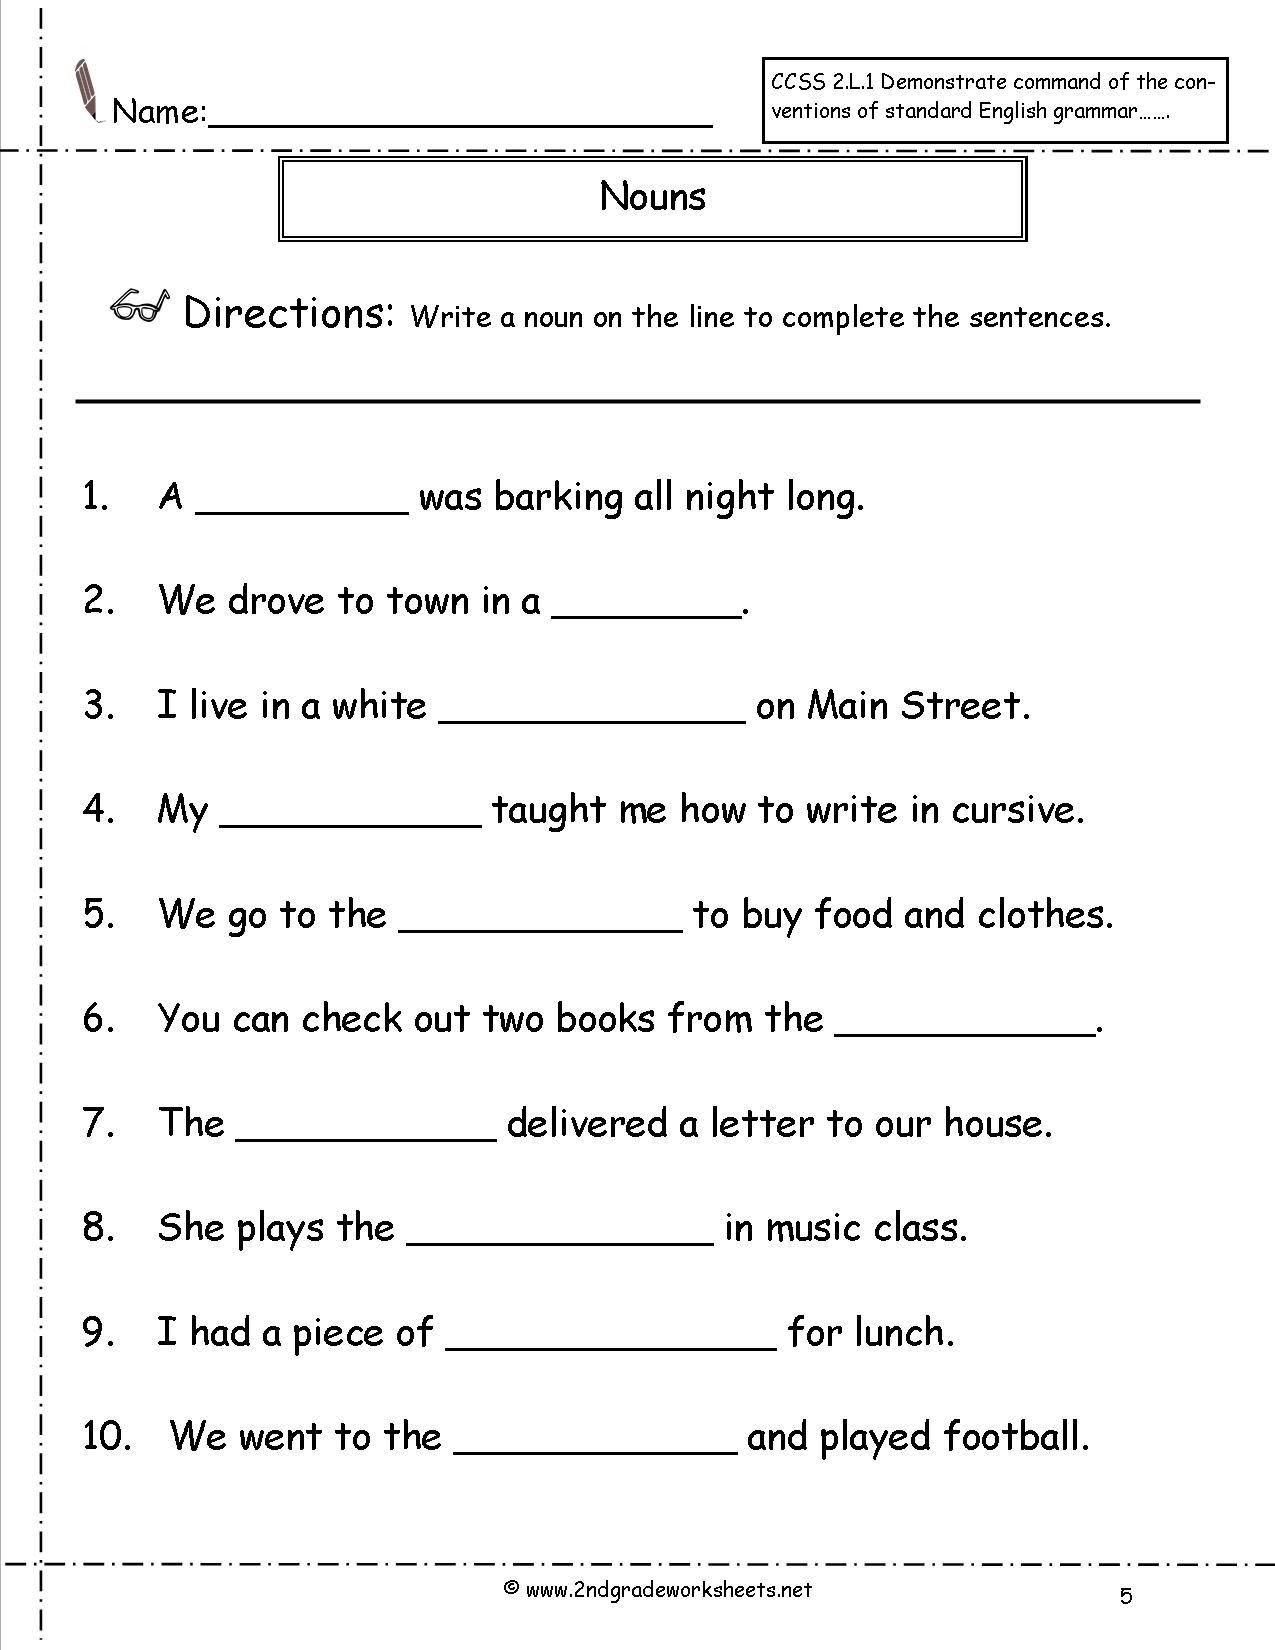 english grammar noun worksheet for grade 1 elegant nouns worksheets